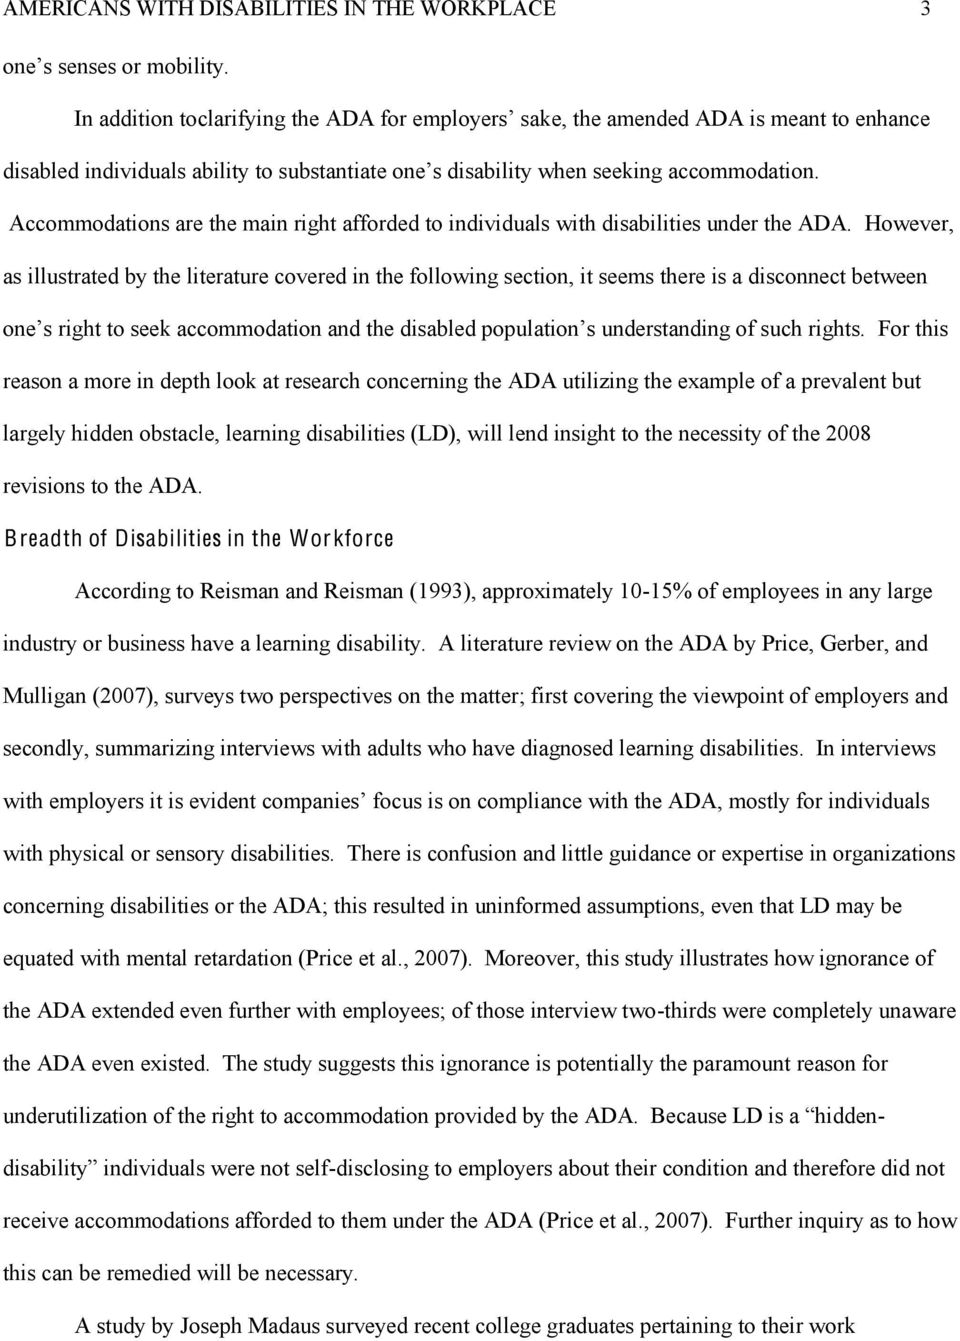 example of a prevalent but largely hidden obstacle, learning disabilities (LD), will lend insight to the necessity of the 2008 revisions to the ADA.